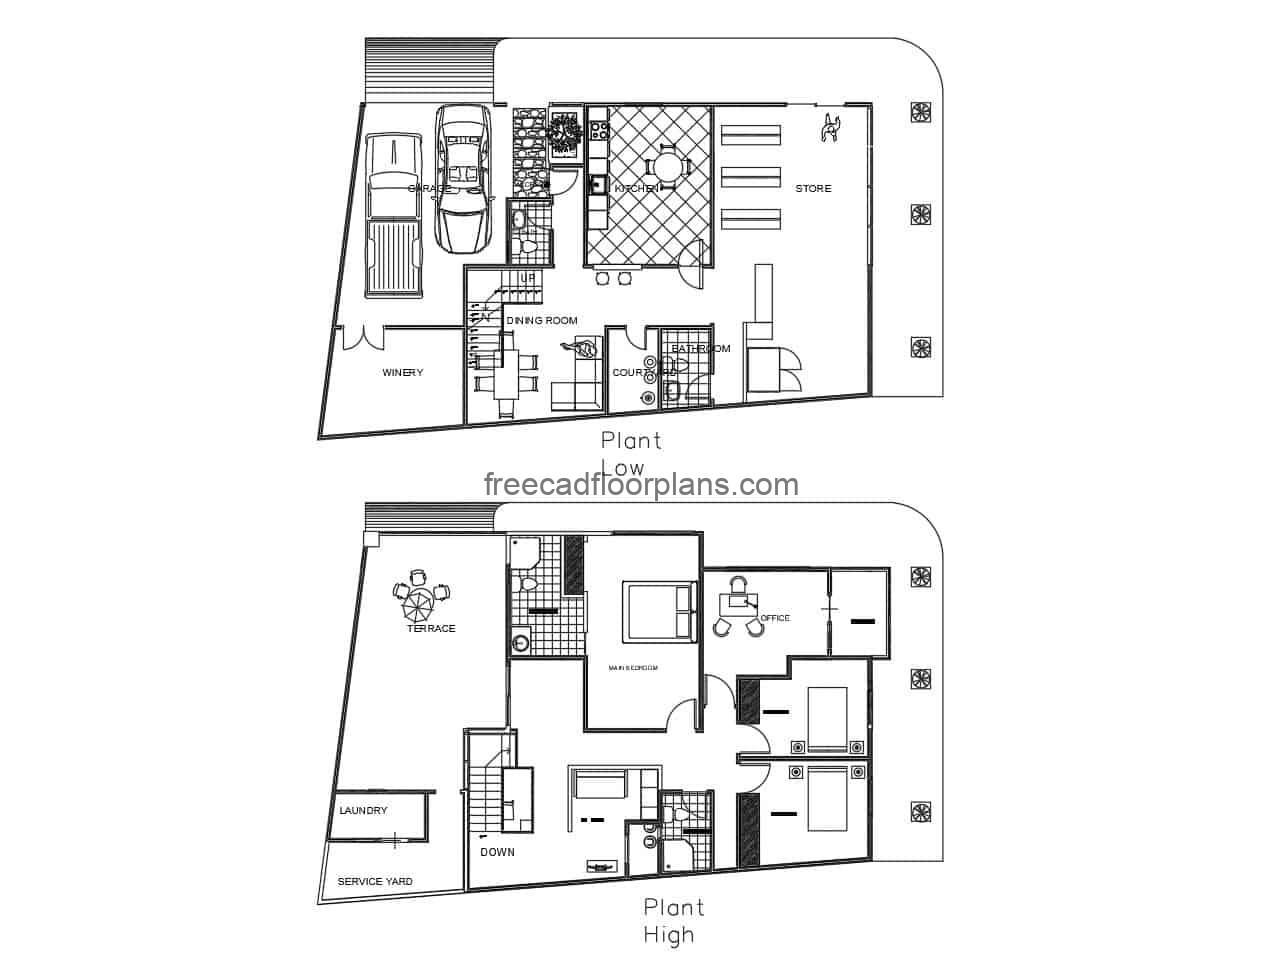 Architectural design of a modern two-level house with a two-car garage in autocad format